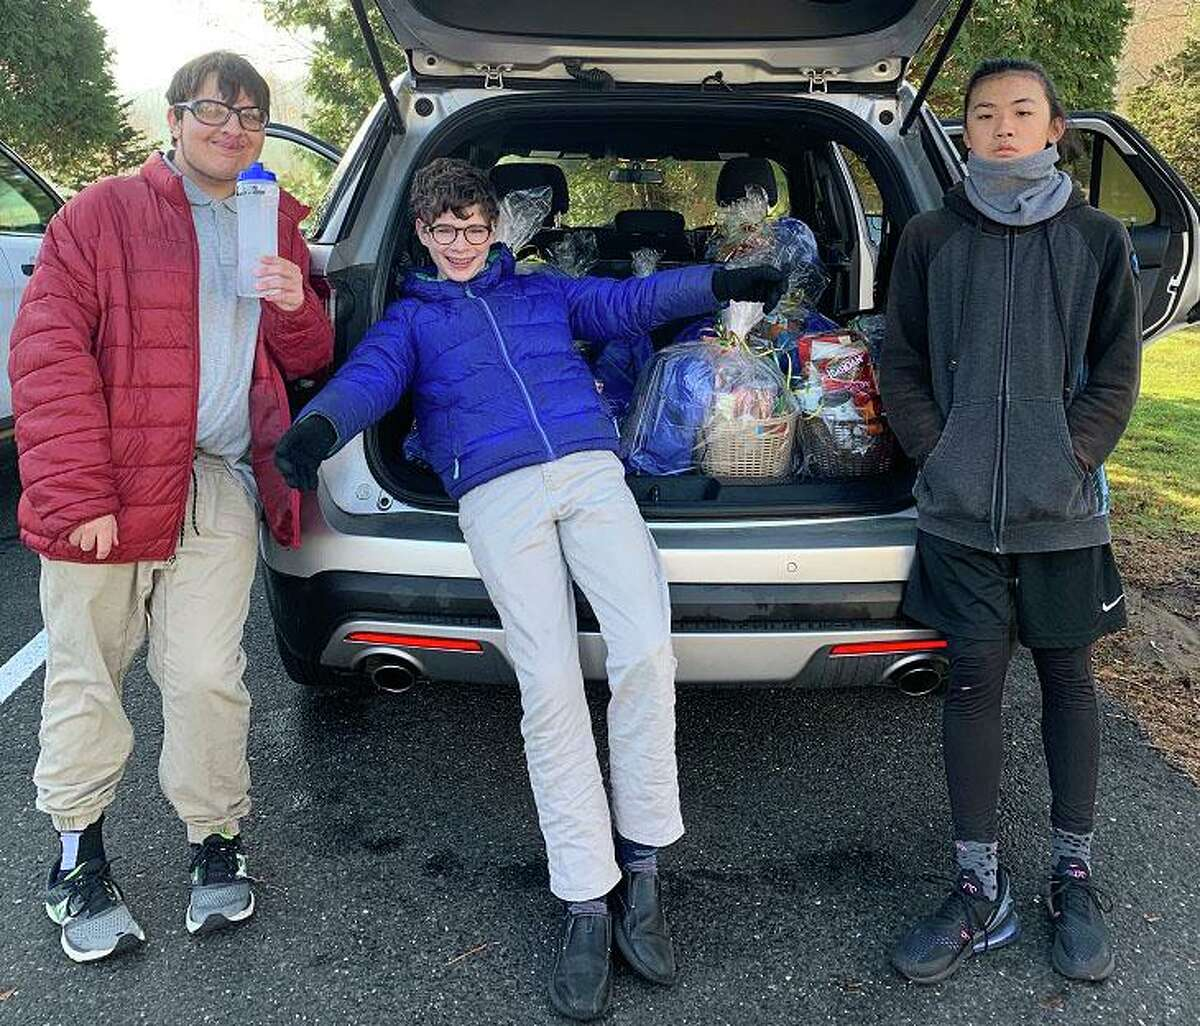 Students from the Glenholme School in Washington recently prepared and delivered Thanksgiving baskets to the Northwest Connecticut Visiting Nurse Association for distribution to local families in need. The baskets were packaged by students and filled with non-perishable food donations from Glenholme staff. The school provided 12 baskets this year, each to be delivered by the VNA. Above, students Ian C., Paul M. and James T. load the car with the baskets. The Glenholme School is a therapeutic boarding and day school for students ages 10-21 with various learning, social and emotional differences.